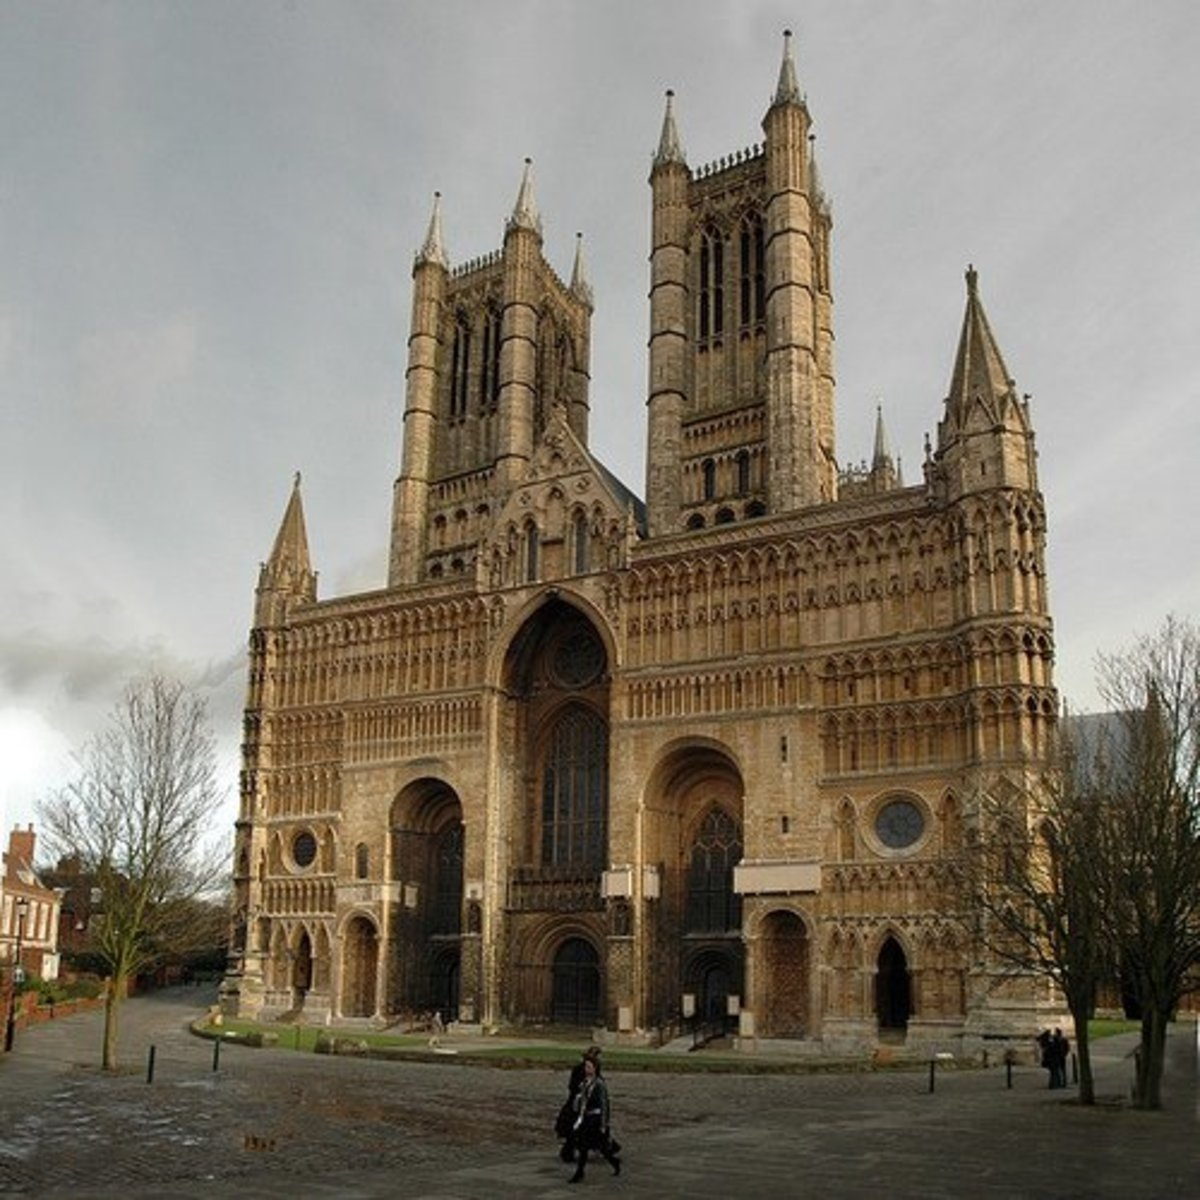 The west front of Lincoln Cathedral, copyright Bryan Ledgard